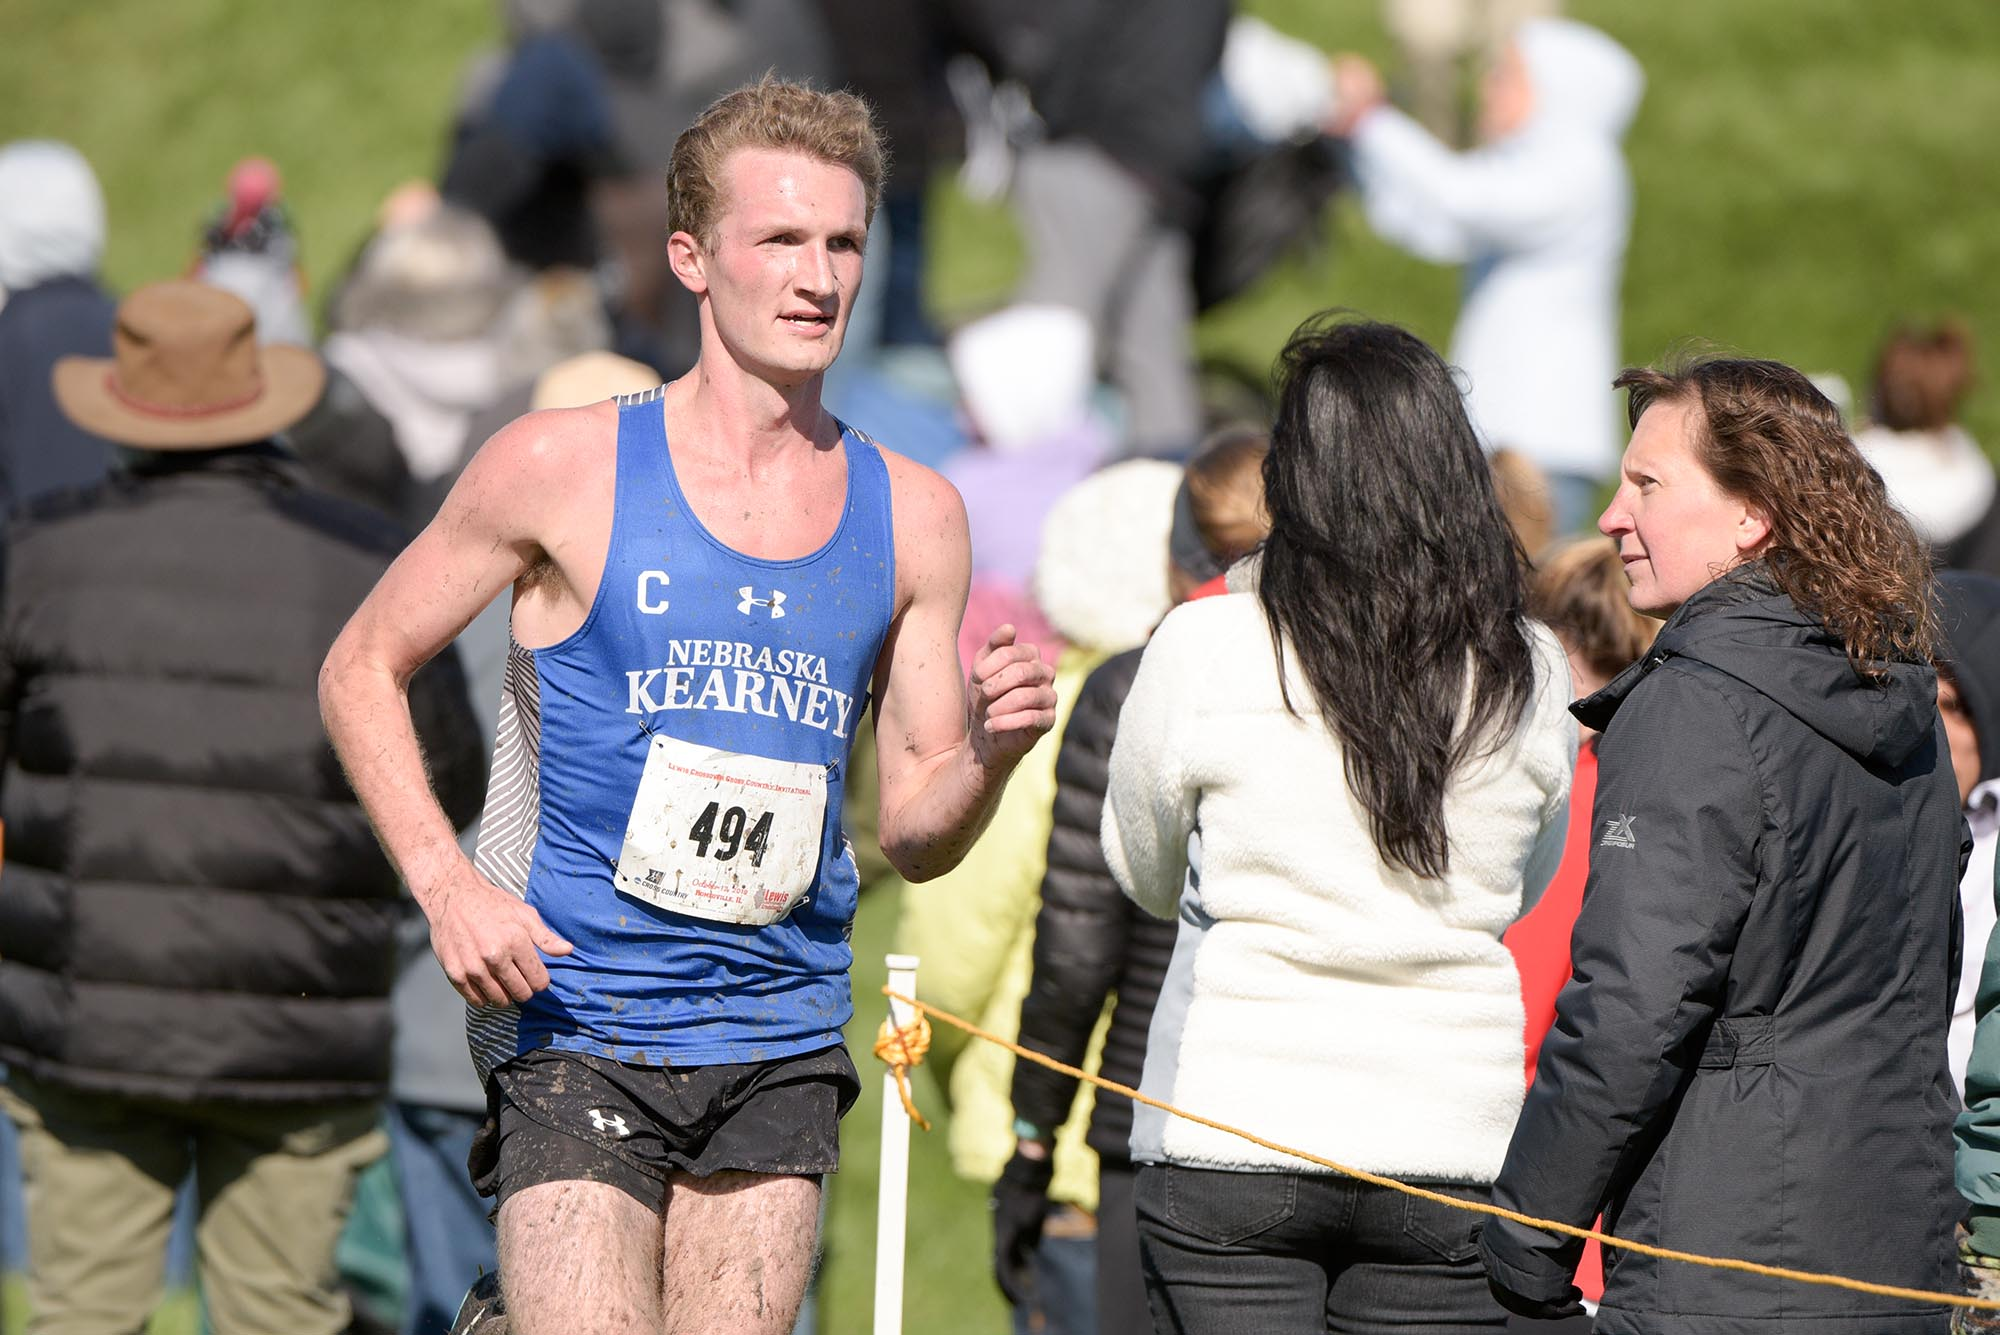 """Although he's battled injuries the past two years, UNK senior Corbin Hansen never lets his teammates down. """"No matter the race, they know I'm going to give it my all,"""" he said. (Courtesy of Steve Woltmann Photography)"""